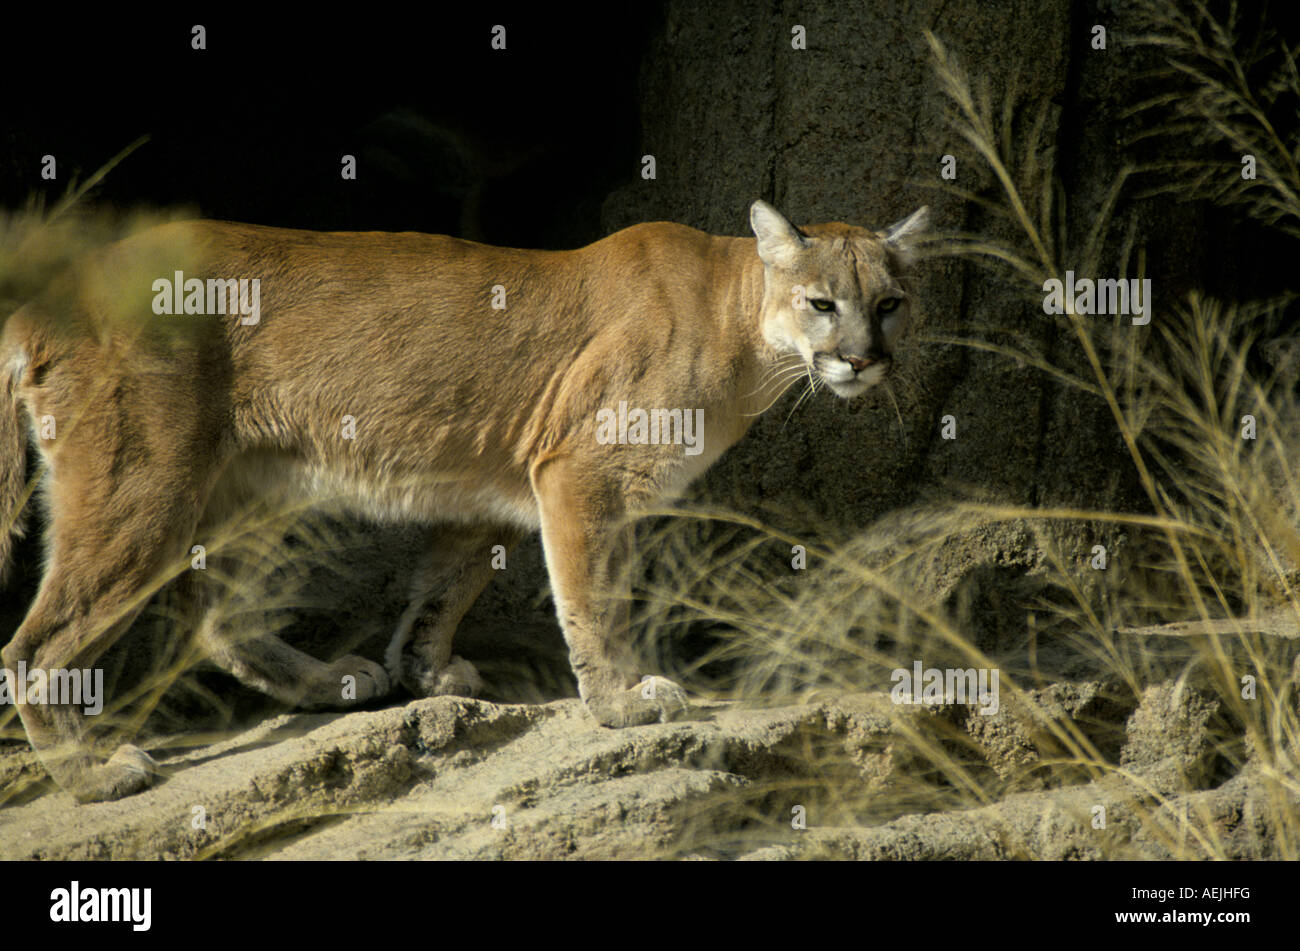 A mountain lion or couger also called a puma Felis concolor on an outcrop of rock in the mountains of central Arizona Stock Photo